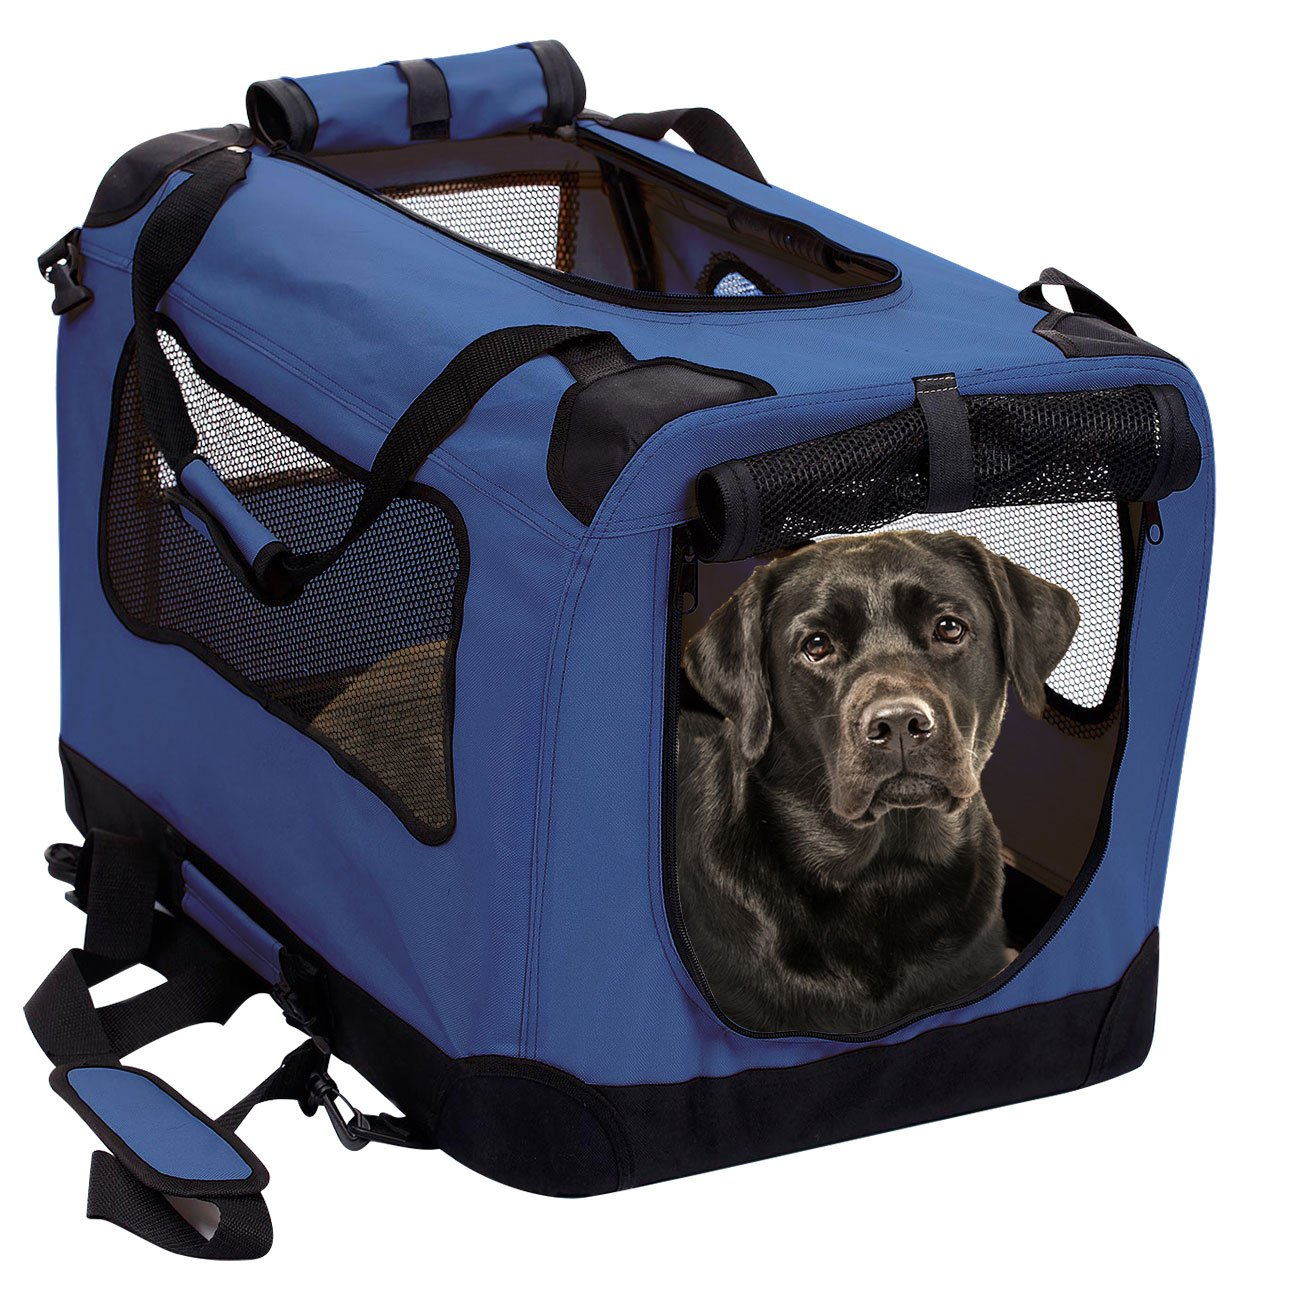 Bonny bluee XXLarge 36in2PET Foldable Dog Crate  Soft, Easy to Fold & Carry Dog Crate for Indoor & Outdoor Use  Comfy Dog Home & Dog Travel Crate  Strong Steel Frame, Washable Fabric Cover, Frontal Zipper Large bluee